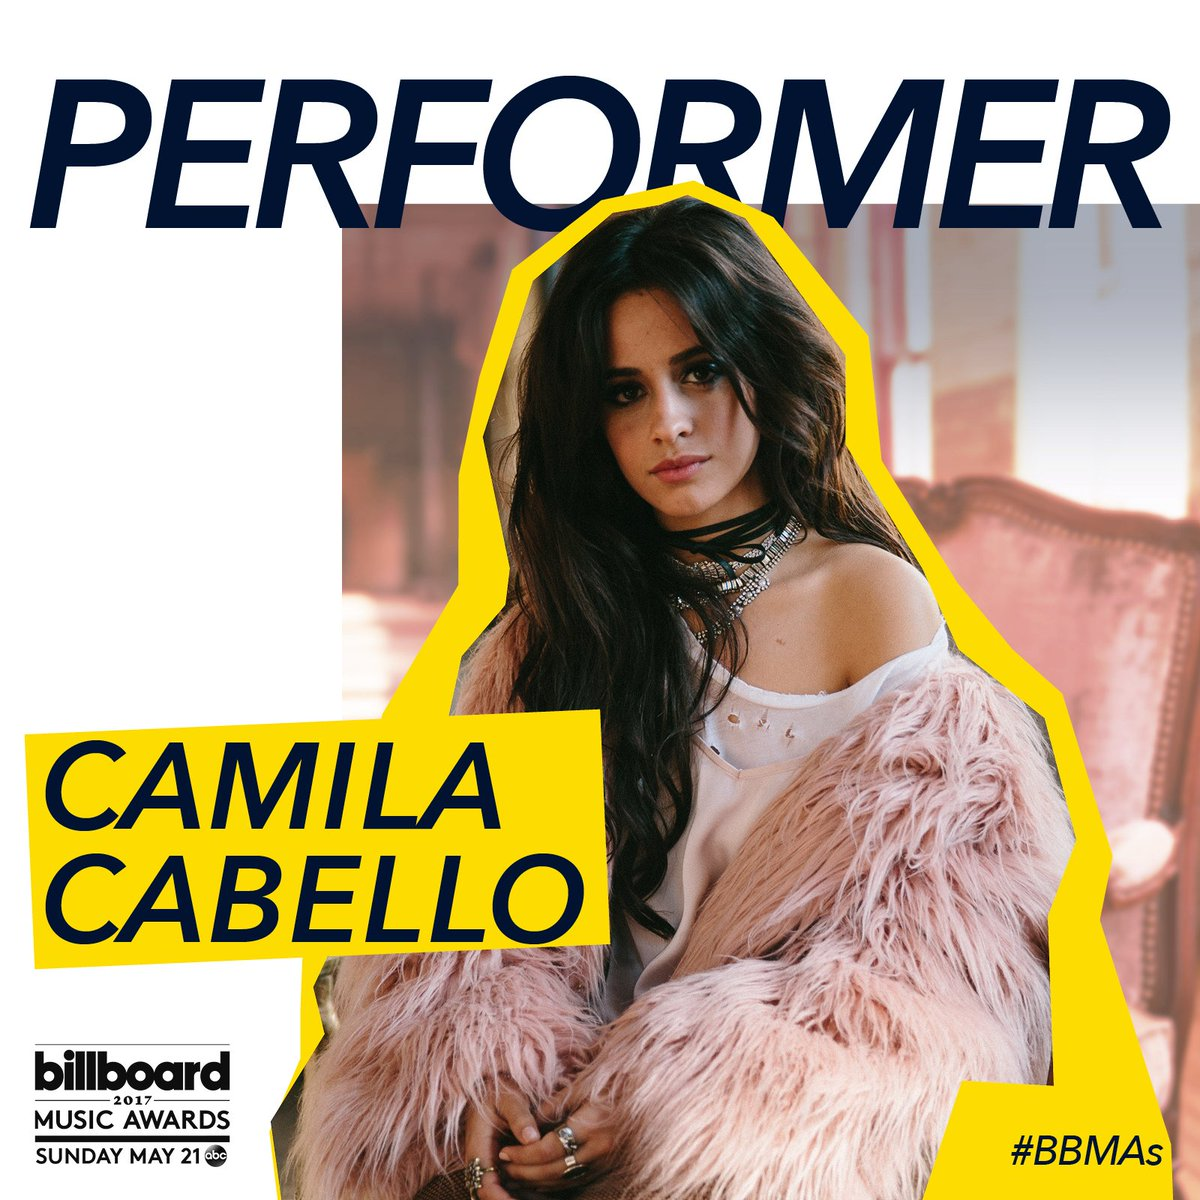 BILLBOARD MUSIC AWARDS • SUNDAY • CAMILA CABELLO • 7PM CST• #bbmas https://t.co/mNCtYew3WB